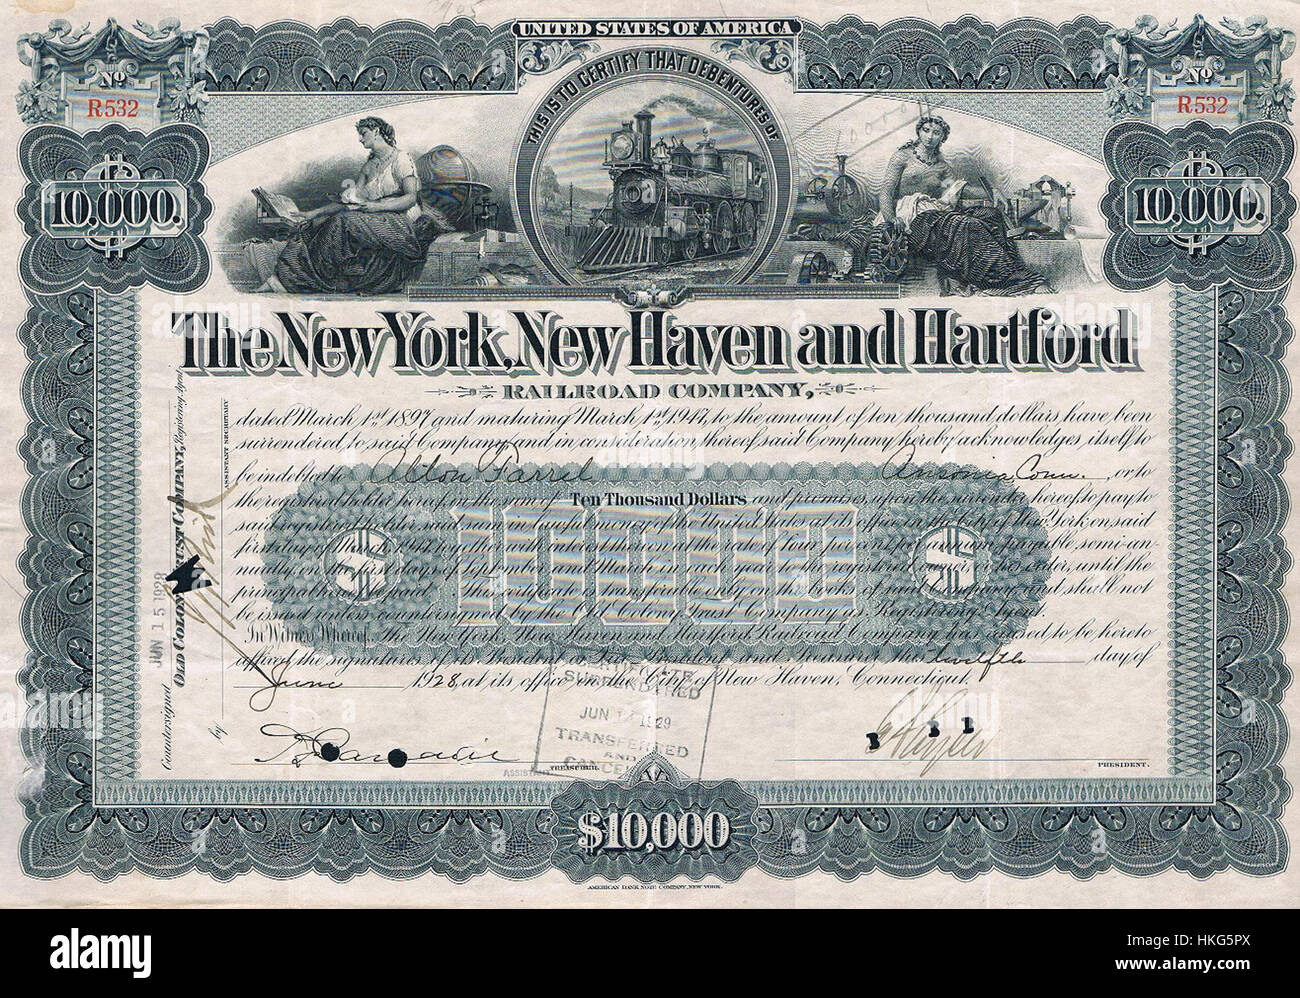 NYNH Stock certificate - Stock Image